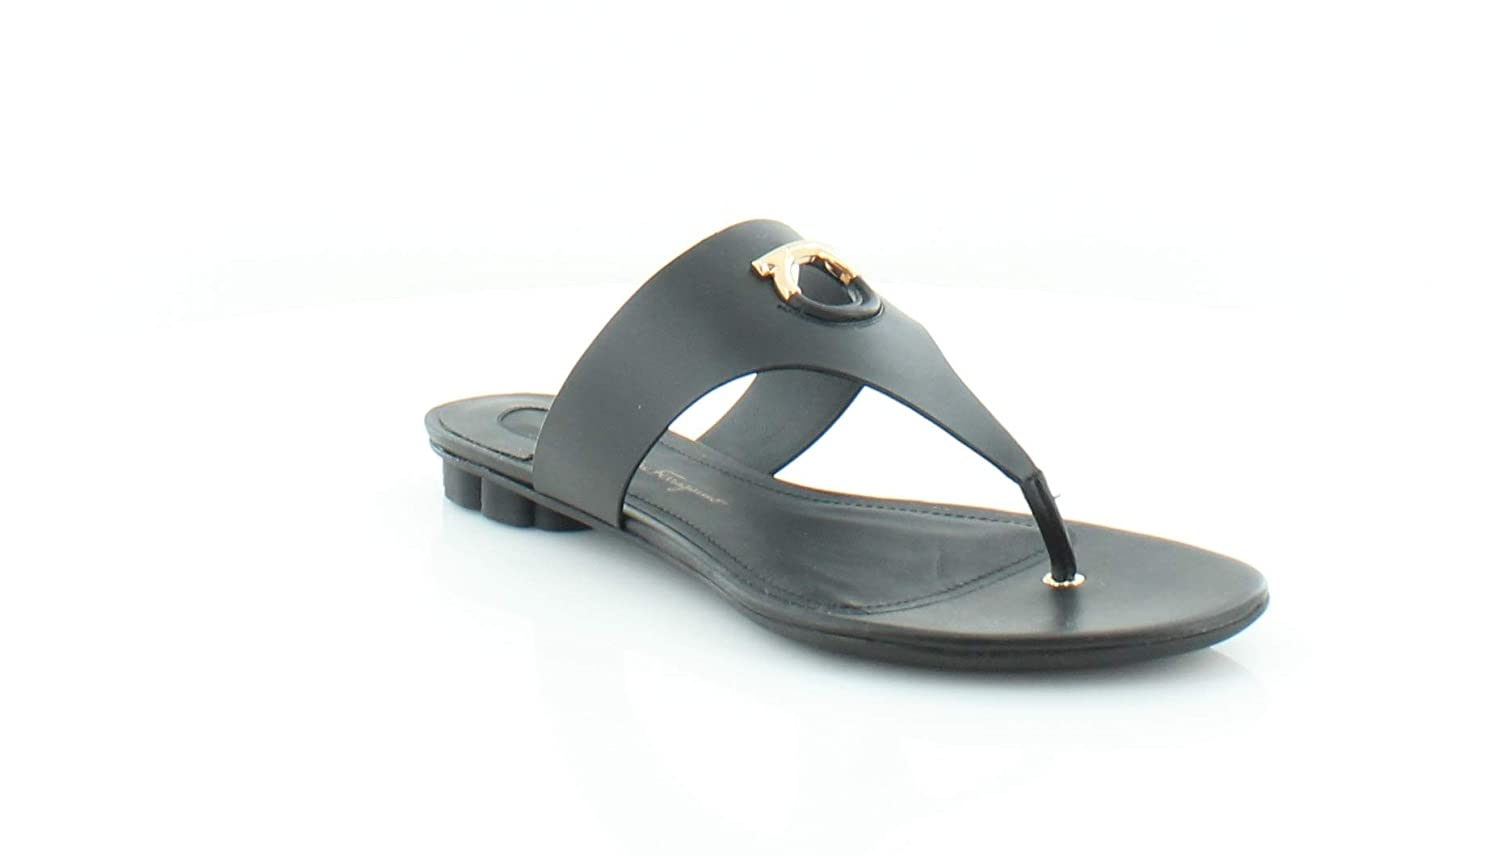 Toe Sandals Strap Enfola Salvatore Ferragamo Split Womens Casual T 4q3RcSL5Aj